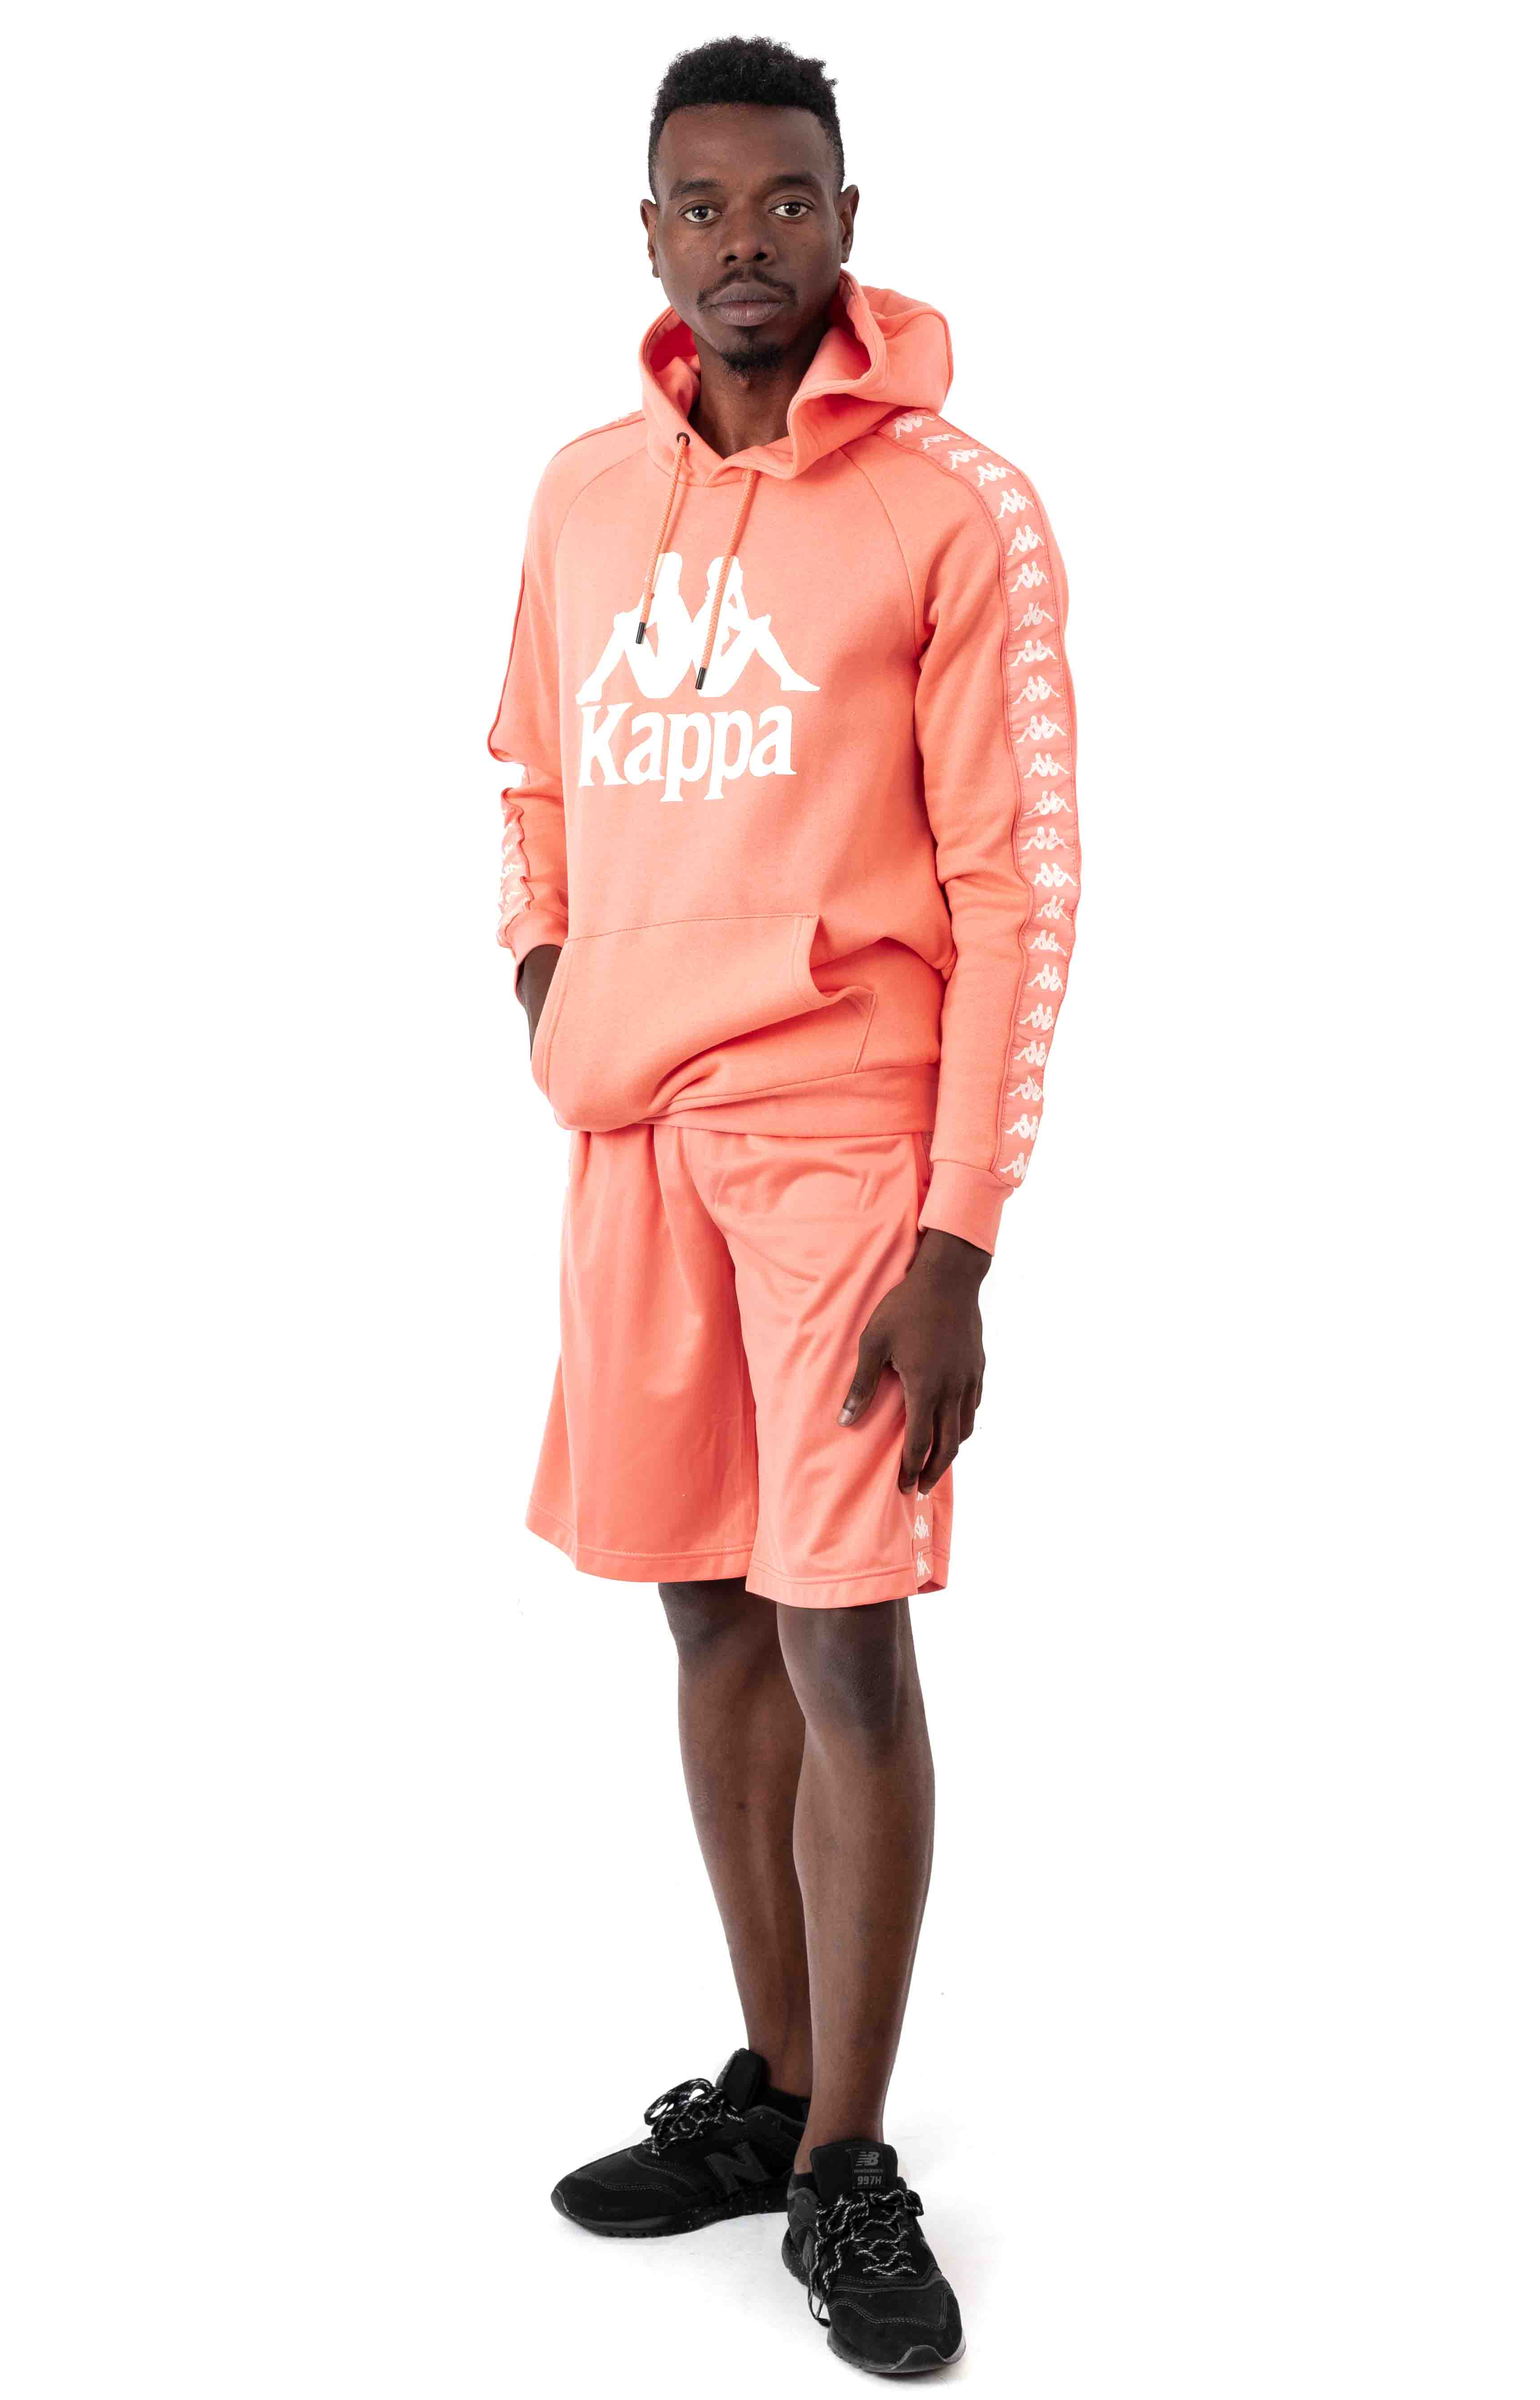 Authentic Hurtado Pullover Hoodie - Pink/White 4